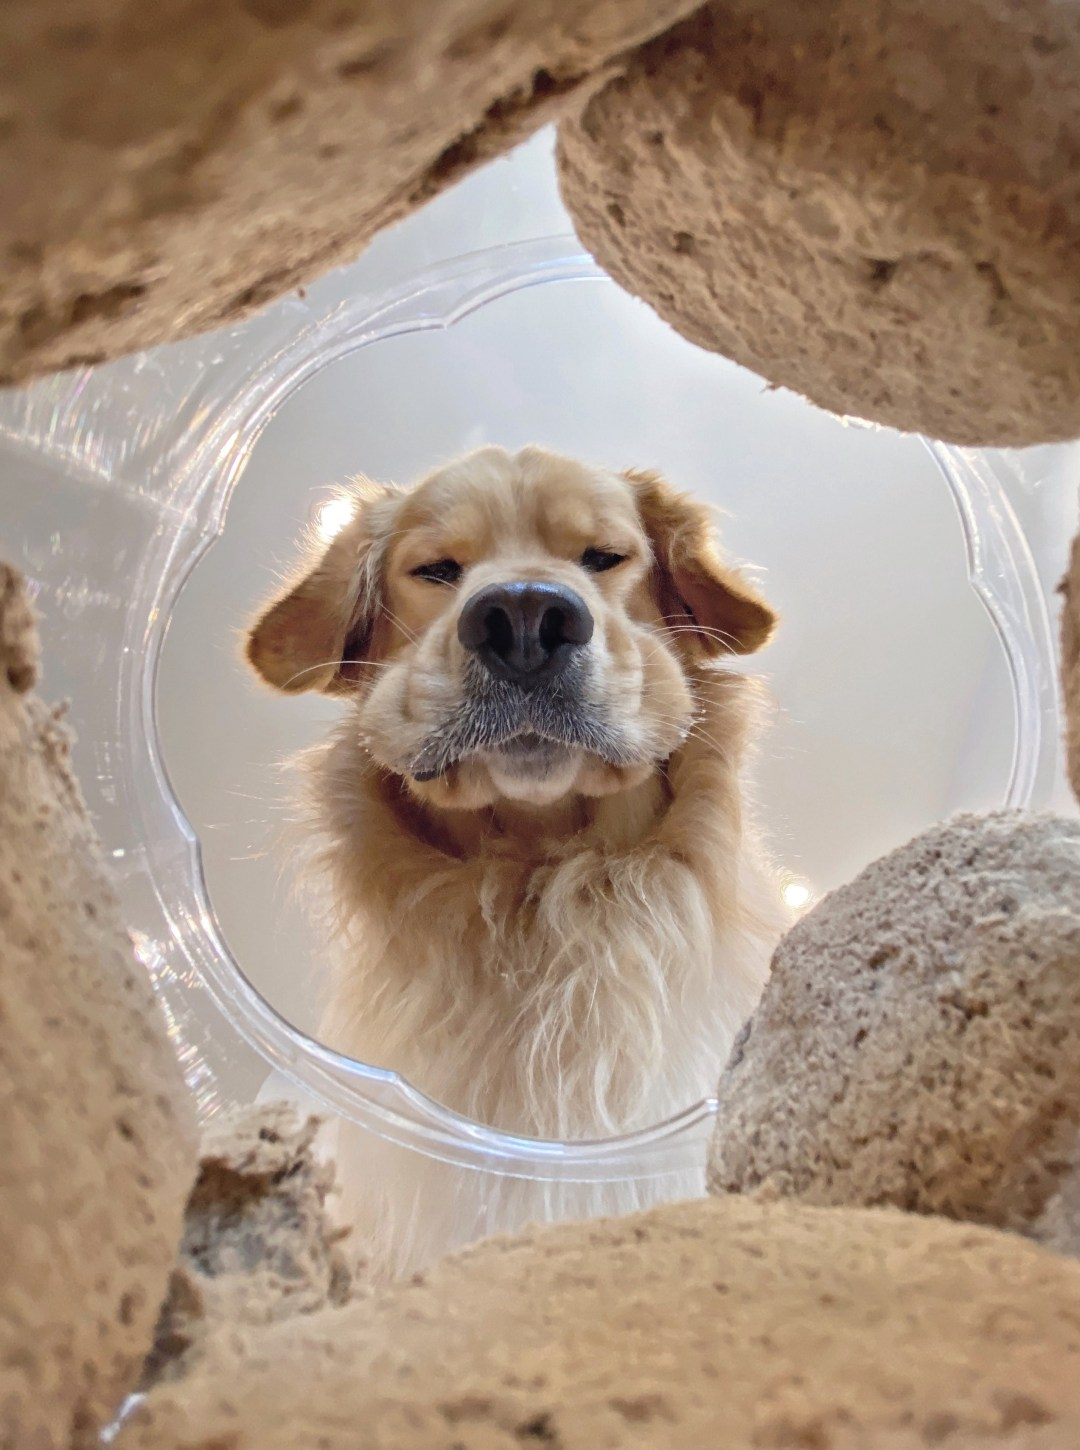 A camera placed inside a bucket of treats shows a golden retriever with stuffed cheeks and an eager expression gazing inside